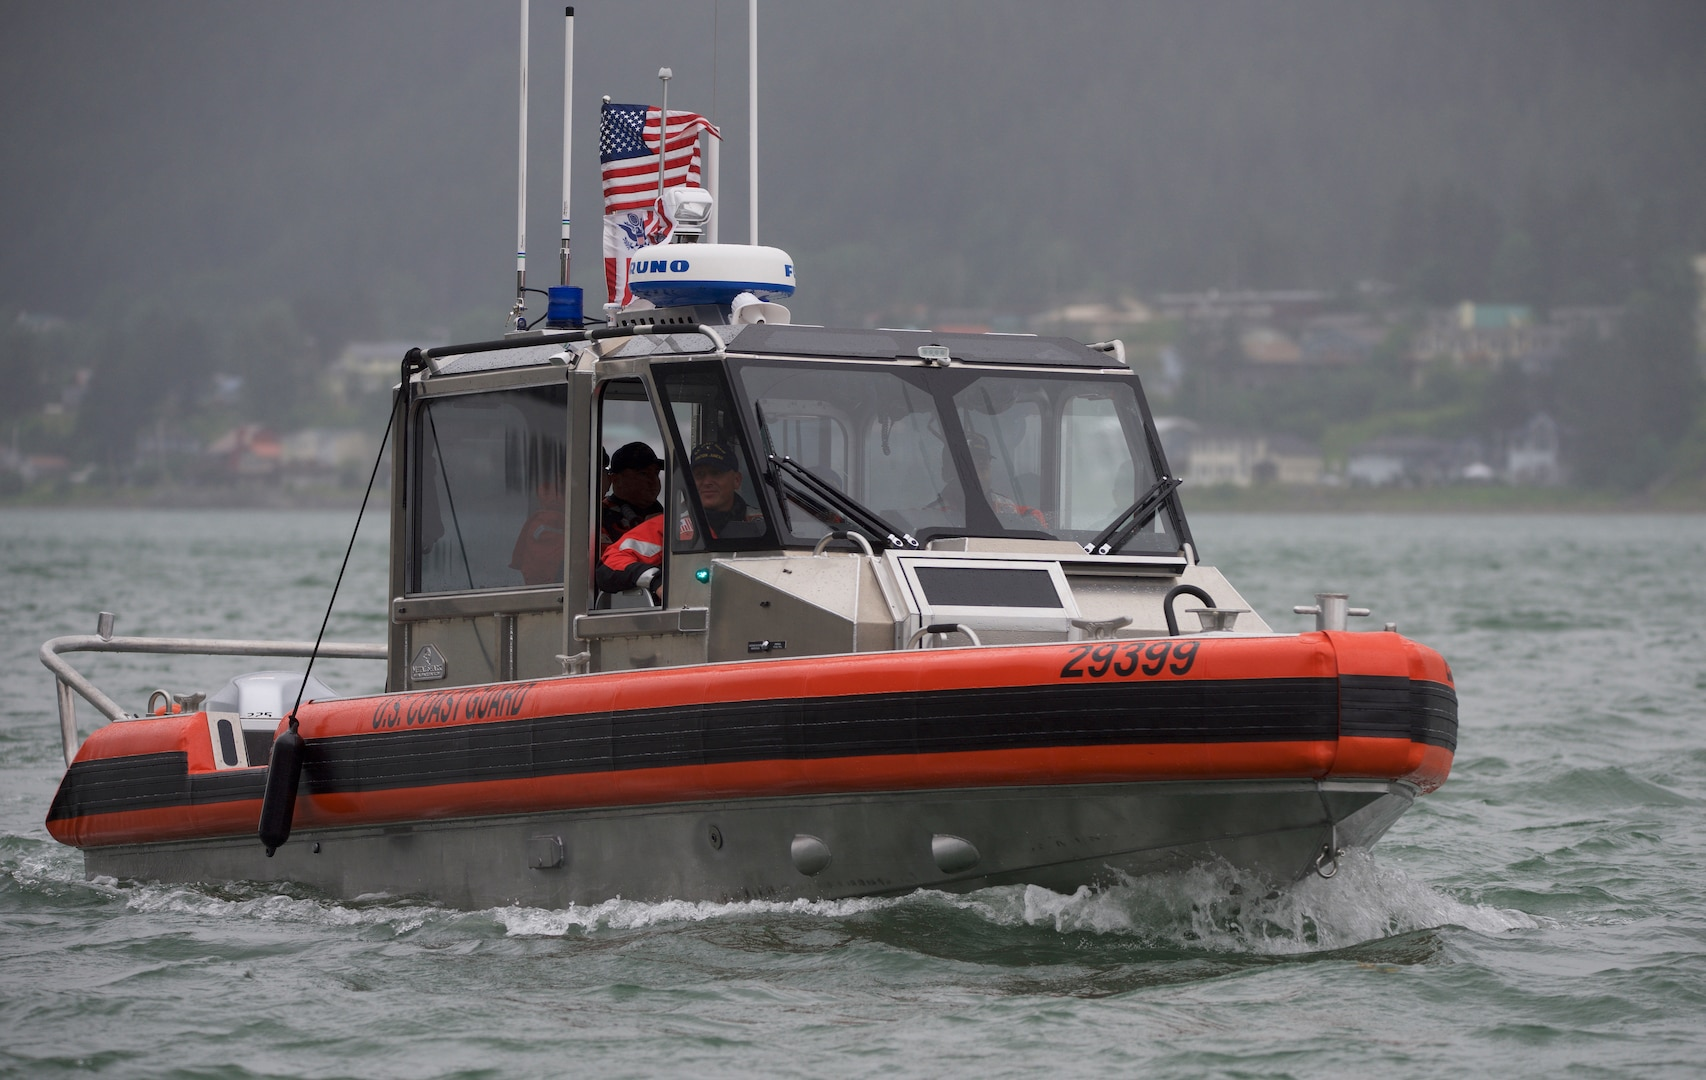 Members of Coast Guard Station Juneau test the capabilities of their new 29-foot Response Boat — SMALL II, in Juneau, Alaska, July 10, 2018. The RB-S II is an upgrade to the current 25-foot Response Boat — SMALL and is due to phase it out soon.